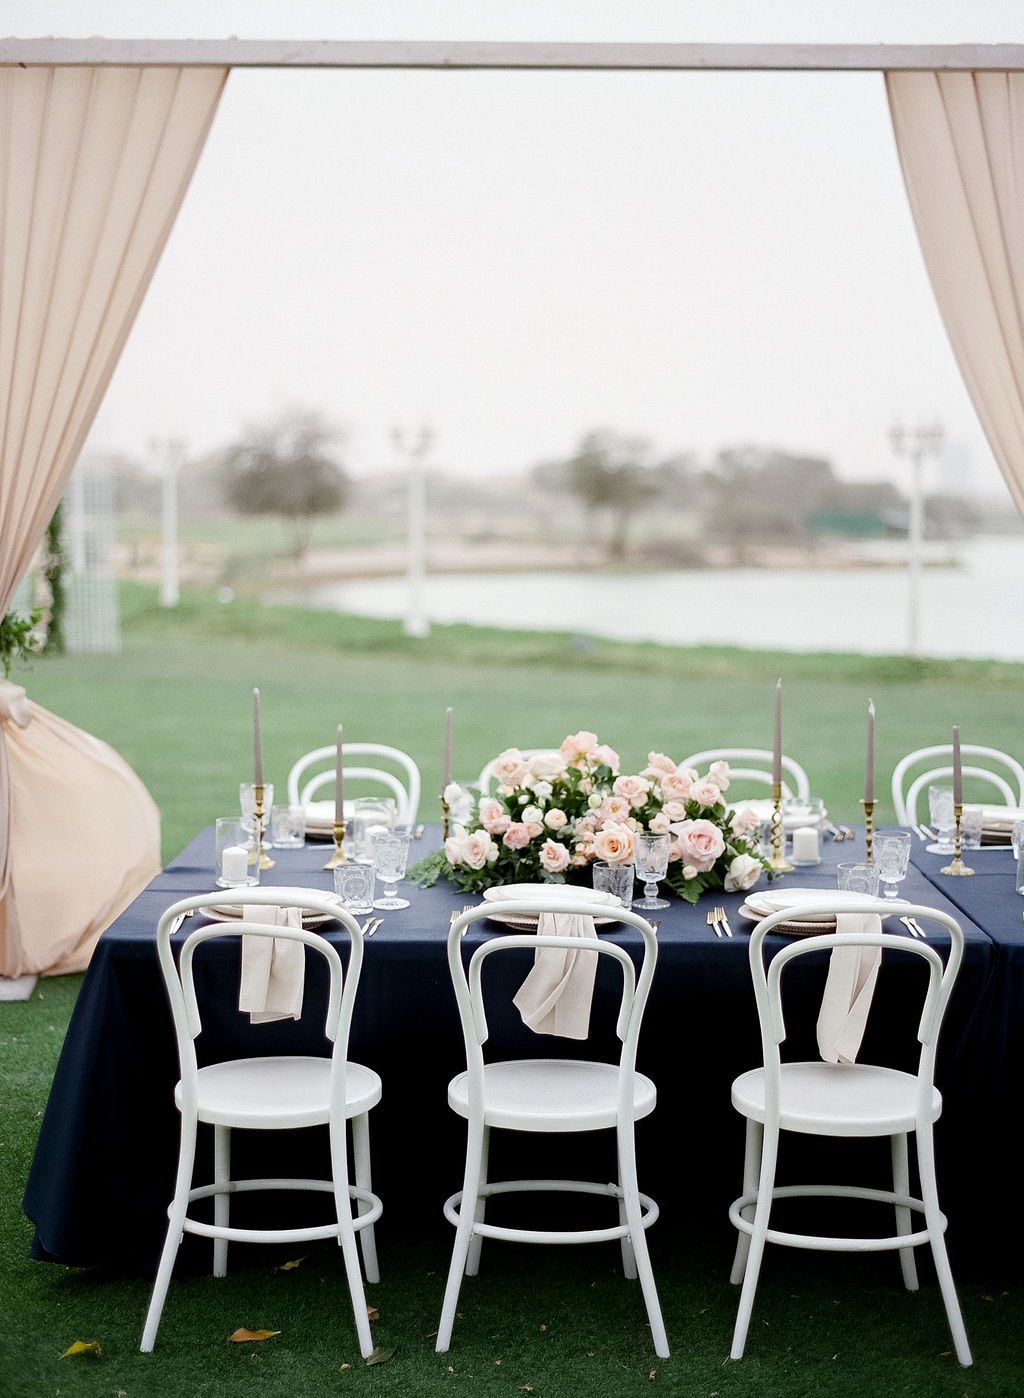 The Purple Chair Dubai Wedding Planner Arabian Ranches Golf Club 14.jpg